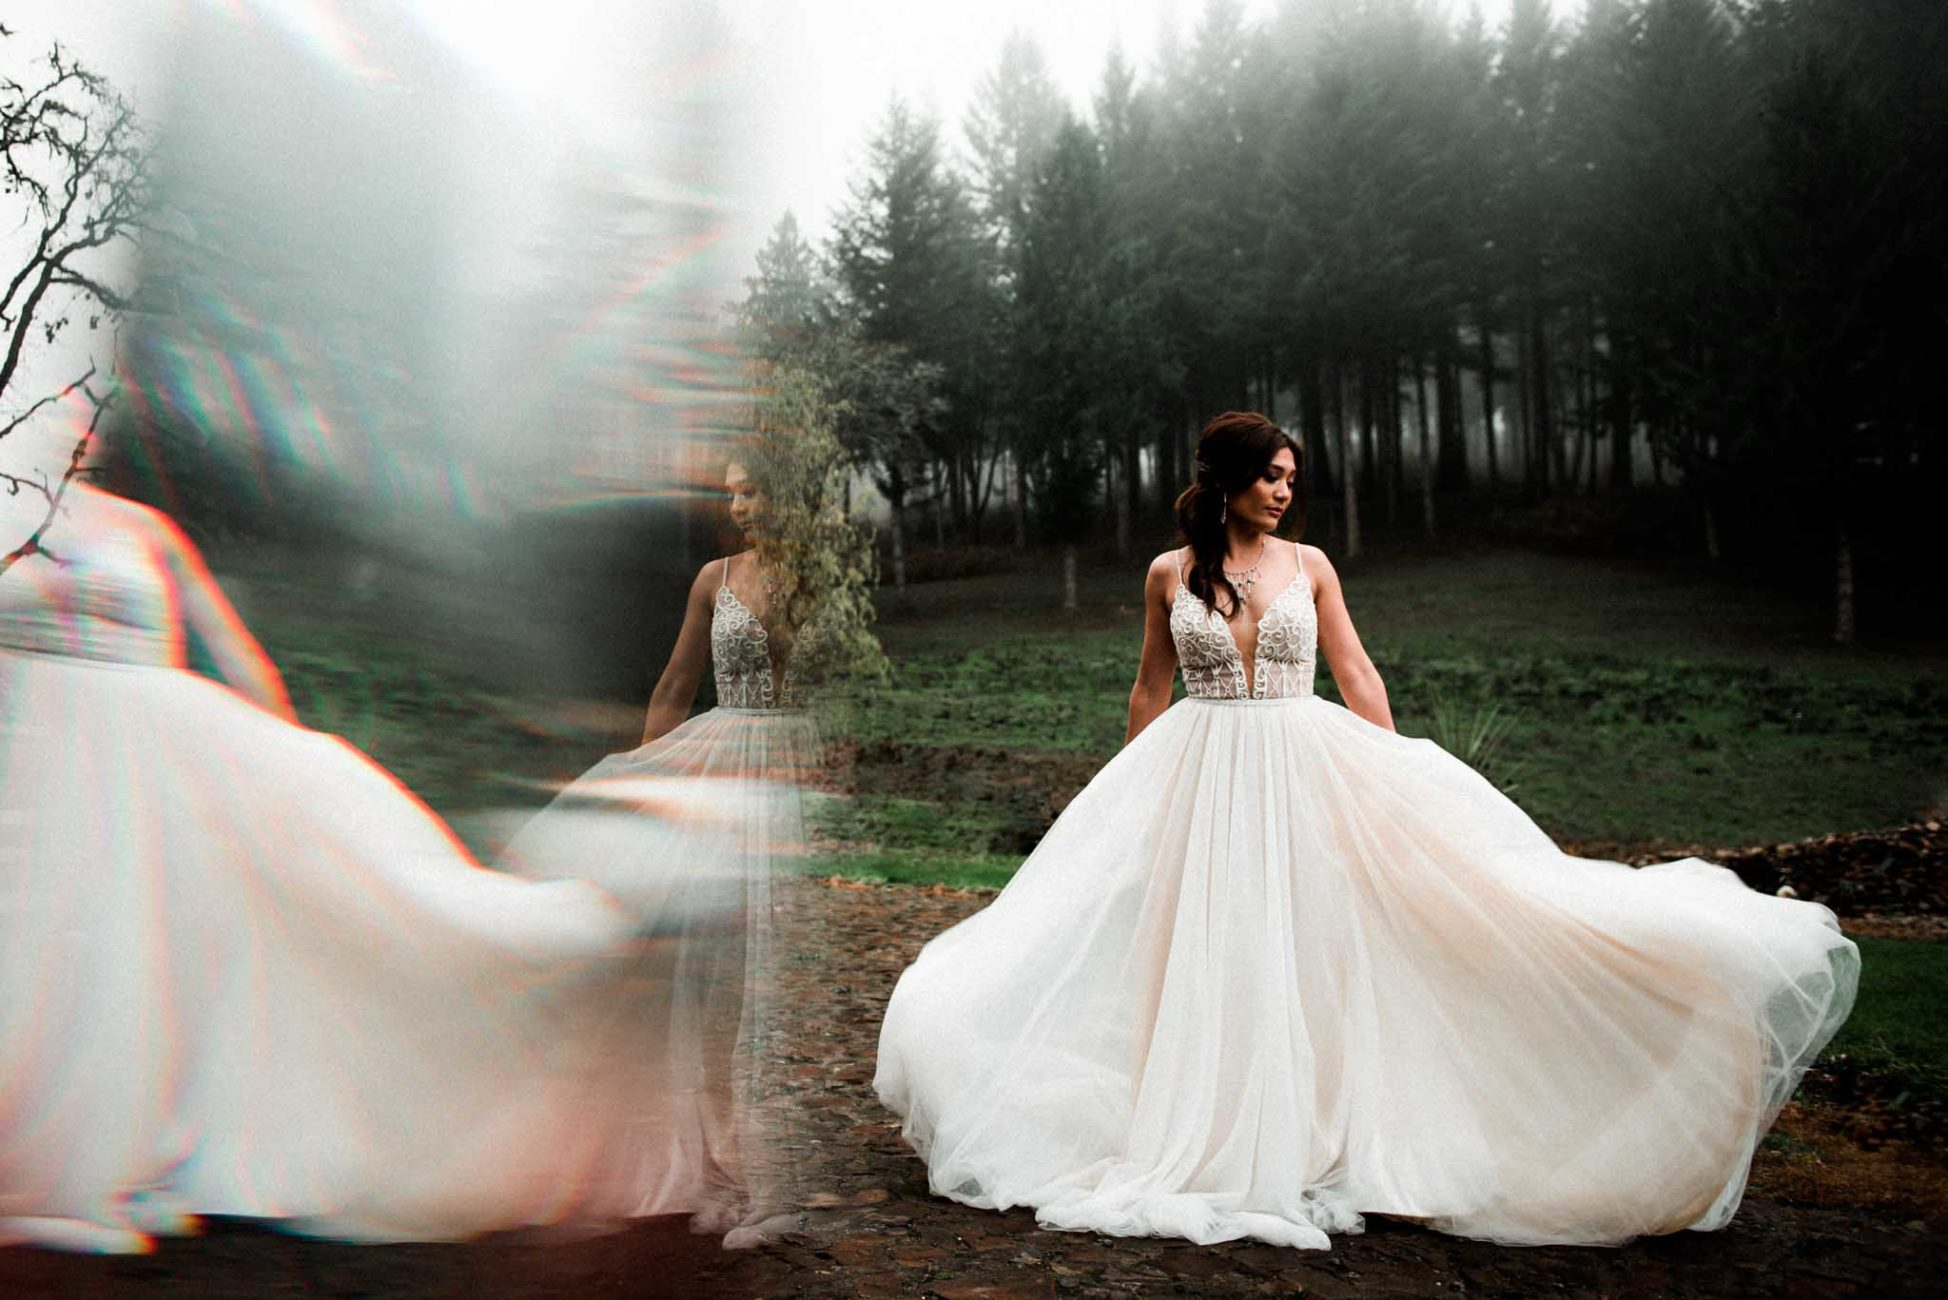 Moody and Foggy winter wedding with dancing bride outdoors in vineyard at Maysara Winery in McMinnville Oregon